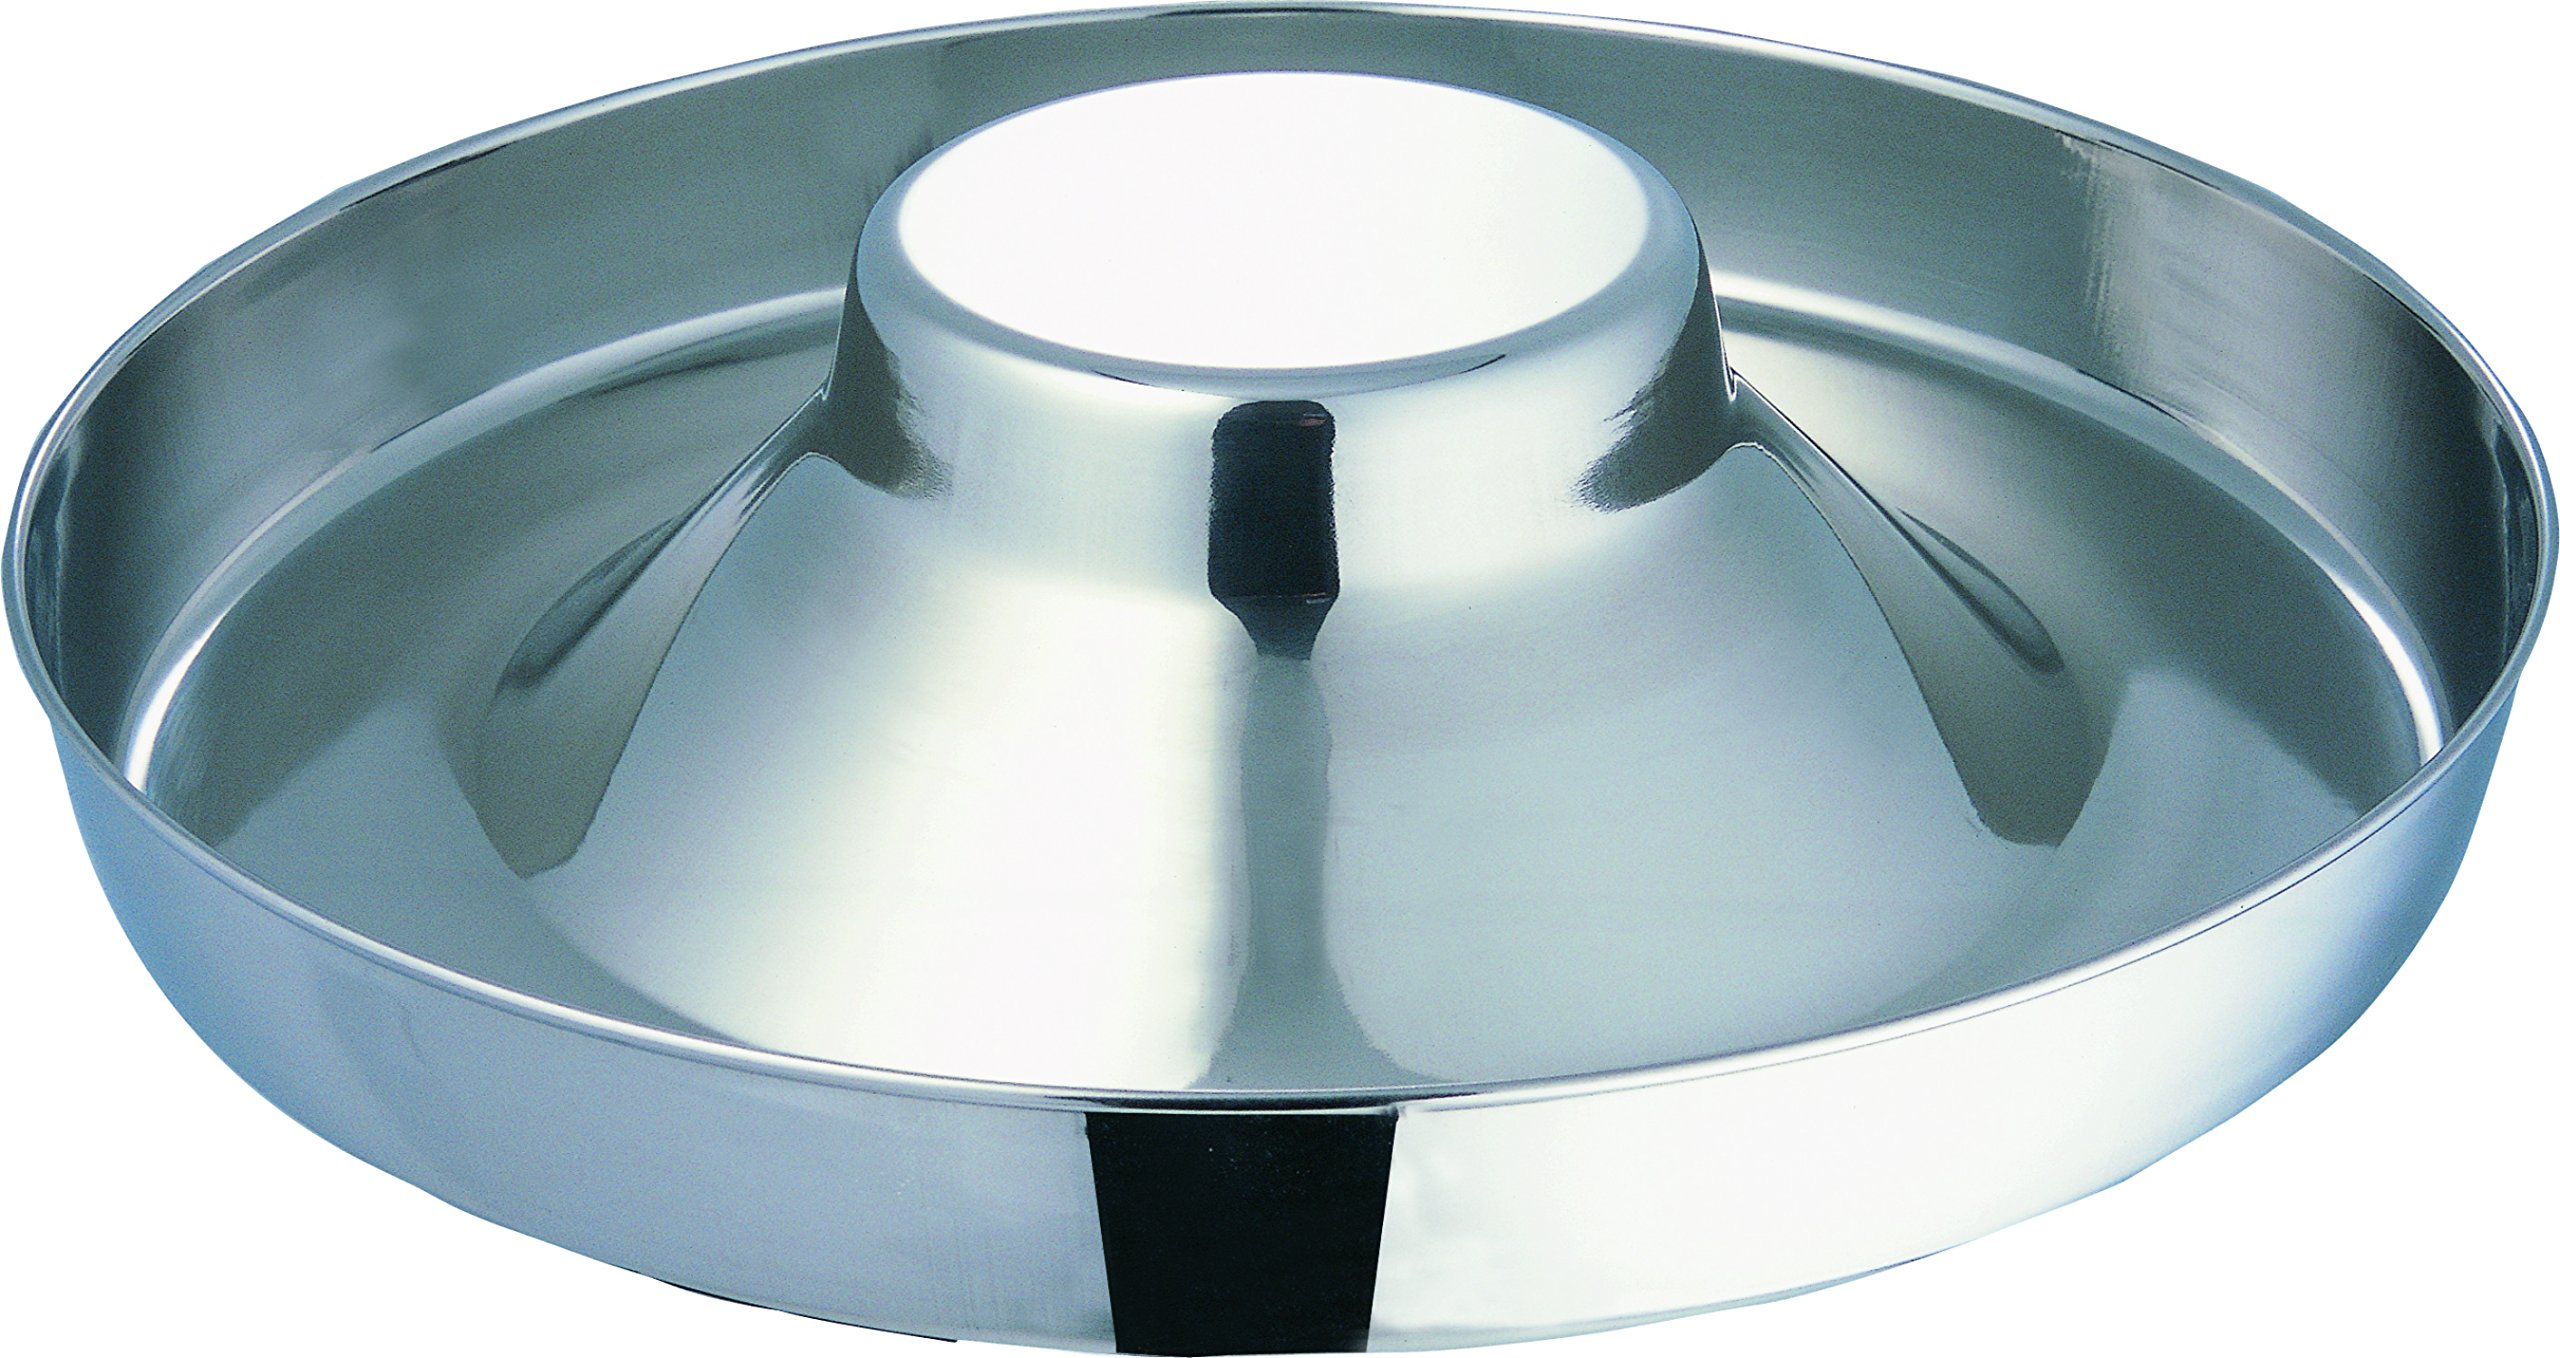 Indipets Extra Heavy Stainless Steel Puppy Saucer with Raised Center 15-Inch Diameter by Indipets